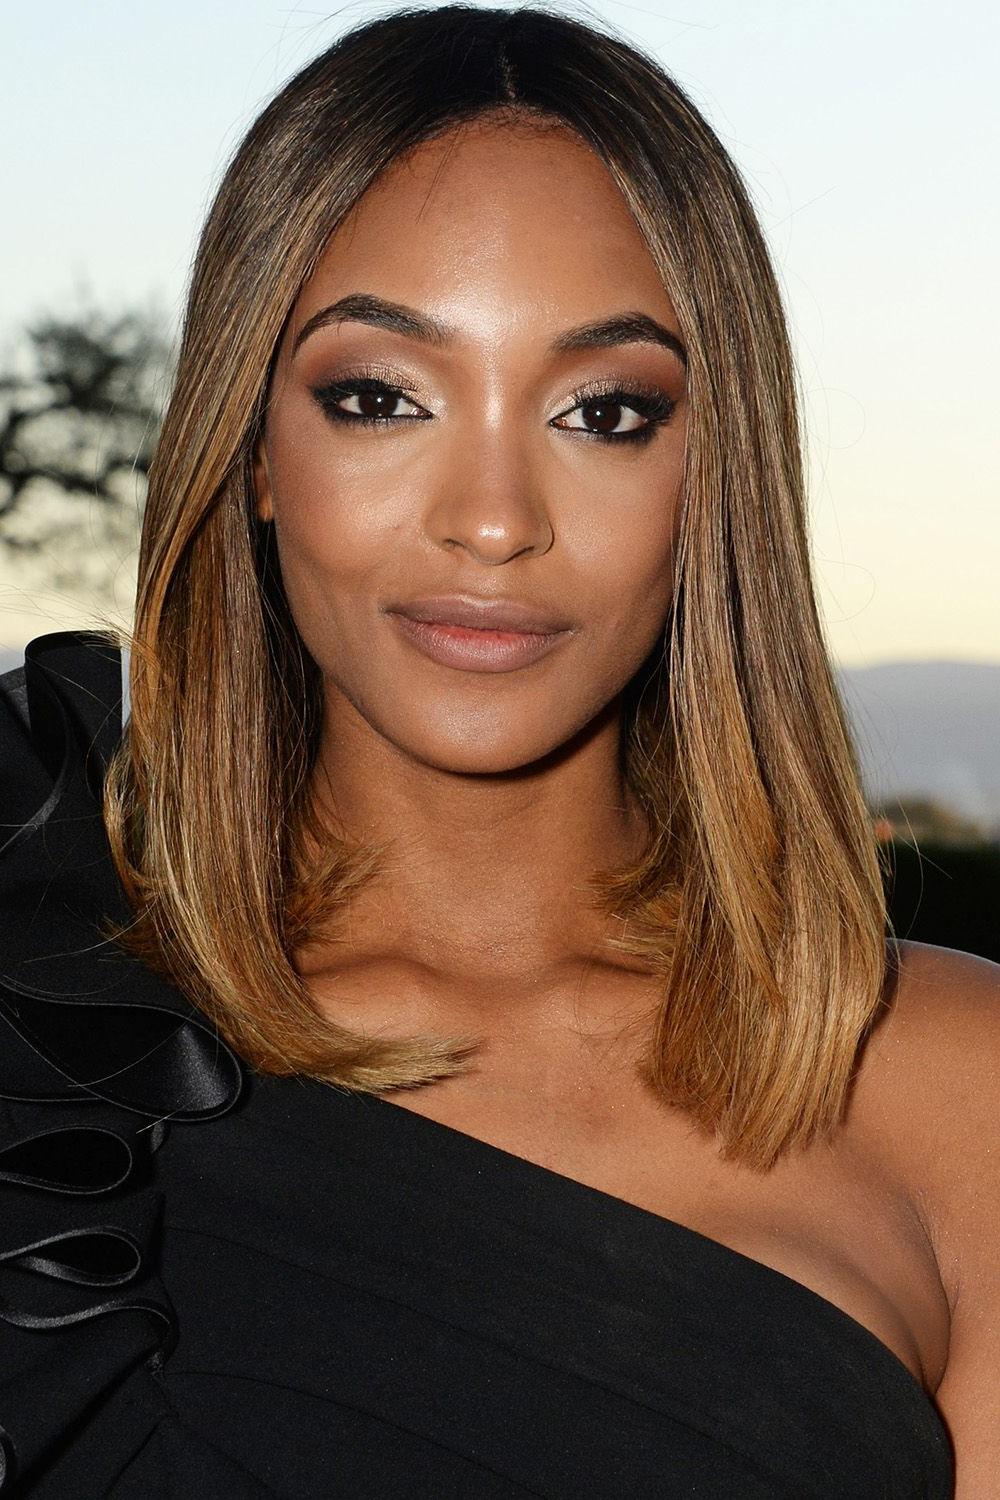 40 Best Medium Hairstyles – Celebrities With Shoulder Length Haircuts Intended For Recent Black People Medium Hairstyles (View 5 of 20)